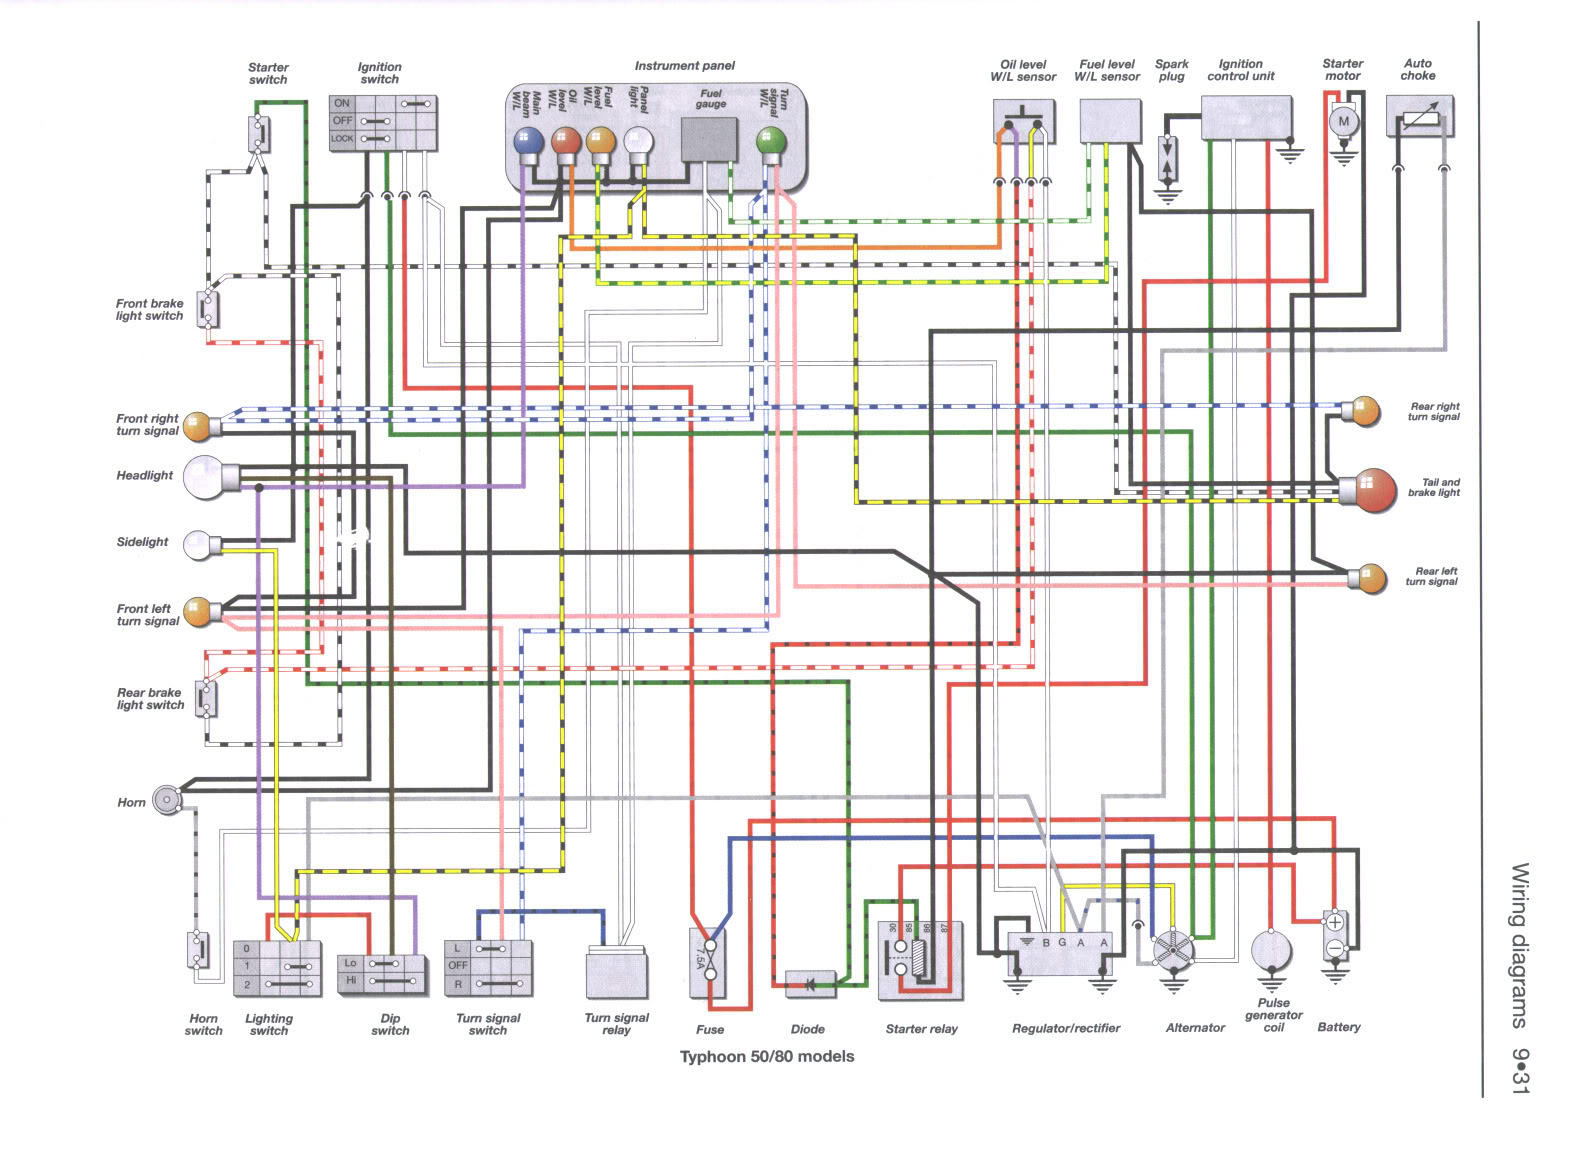 Tao 50 Scooter Wiring Diagram Data Diagrams Piaggio Typhoon Fuses Shack Forum 2012 Taotao 50cc 125 Atv